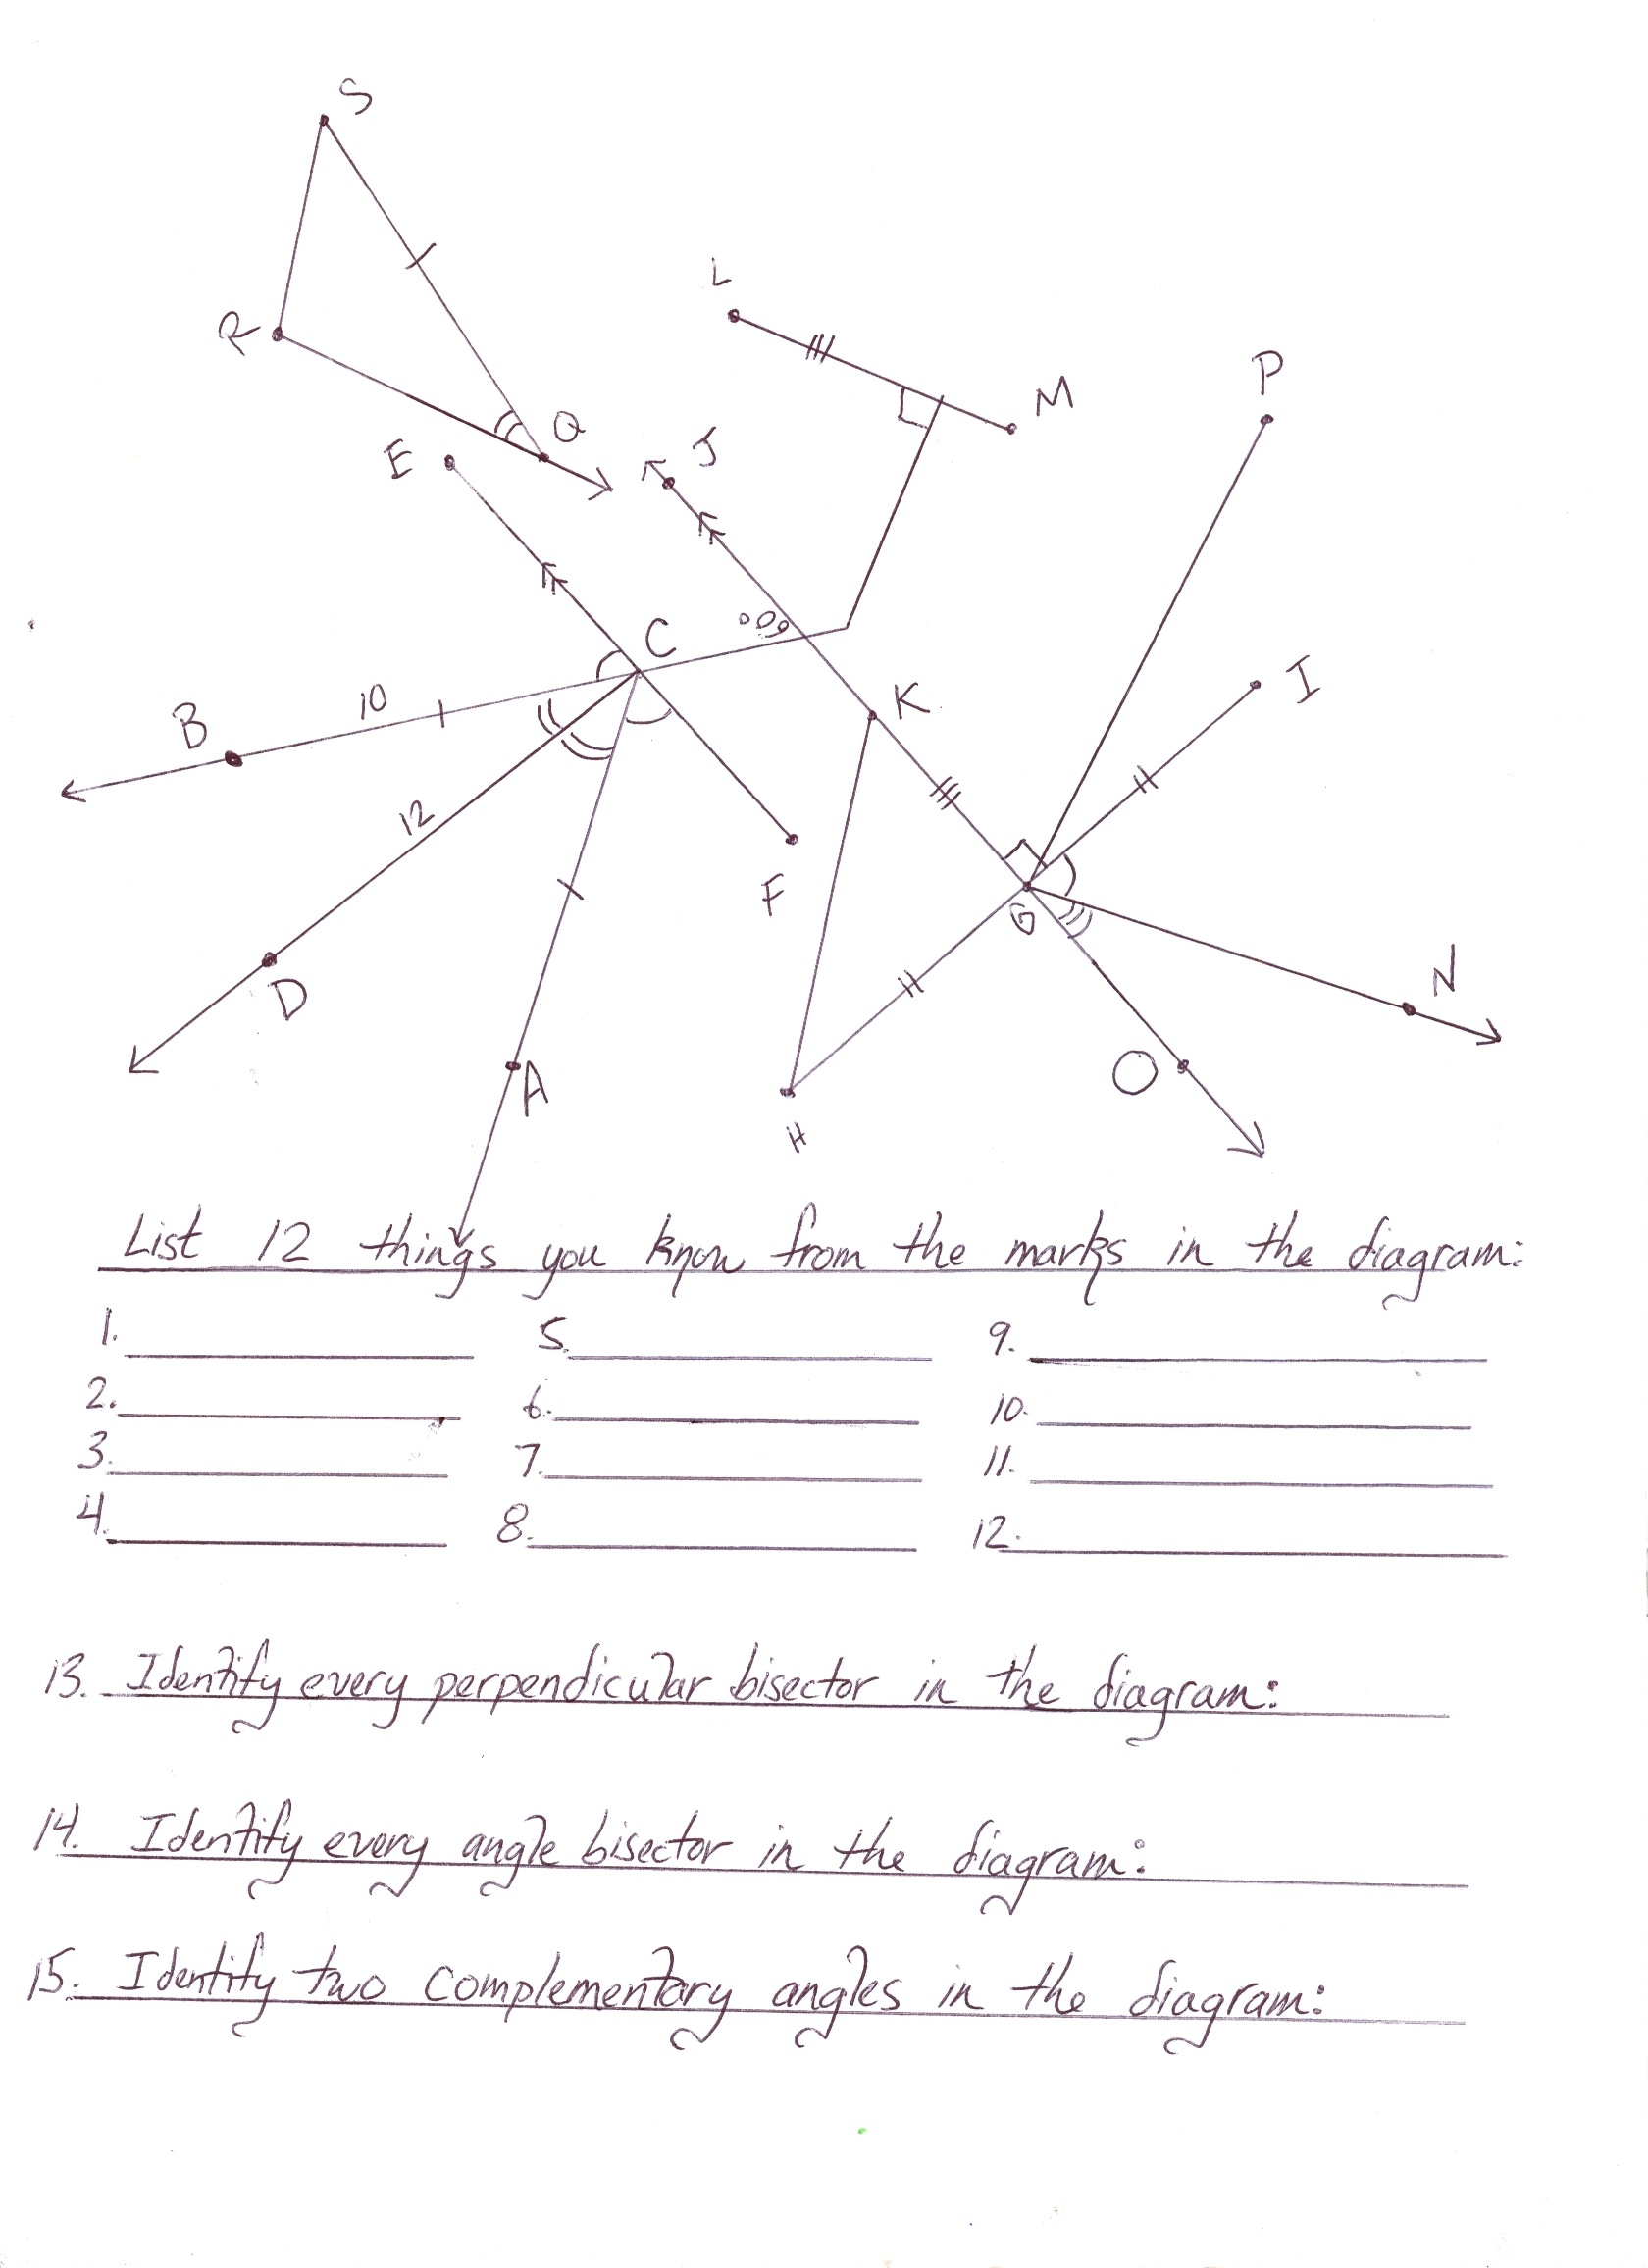 Worksheets Perpendicular Bisector Worksheet perpendicular bisector mrmillermath introgeometrydiagram this worksheet